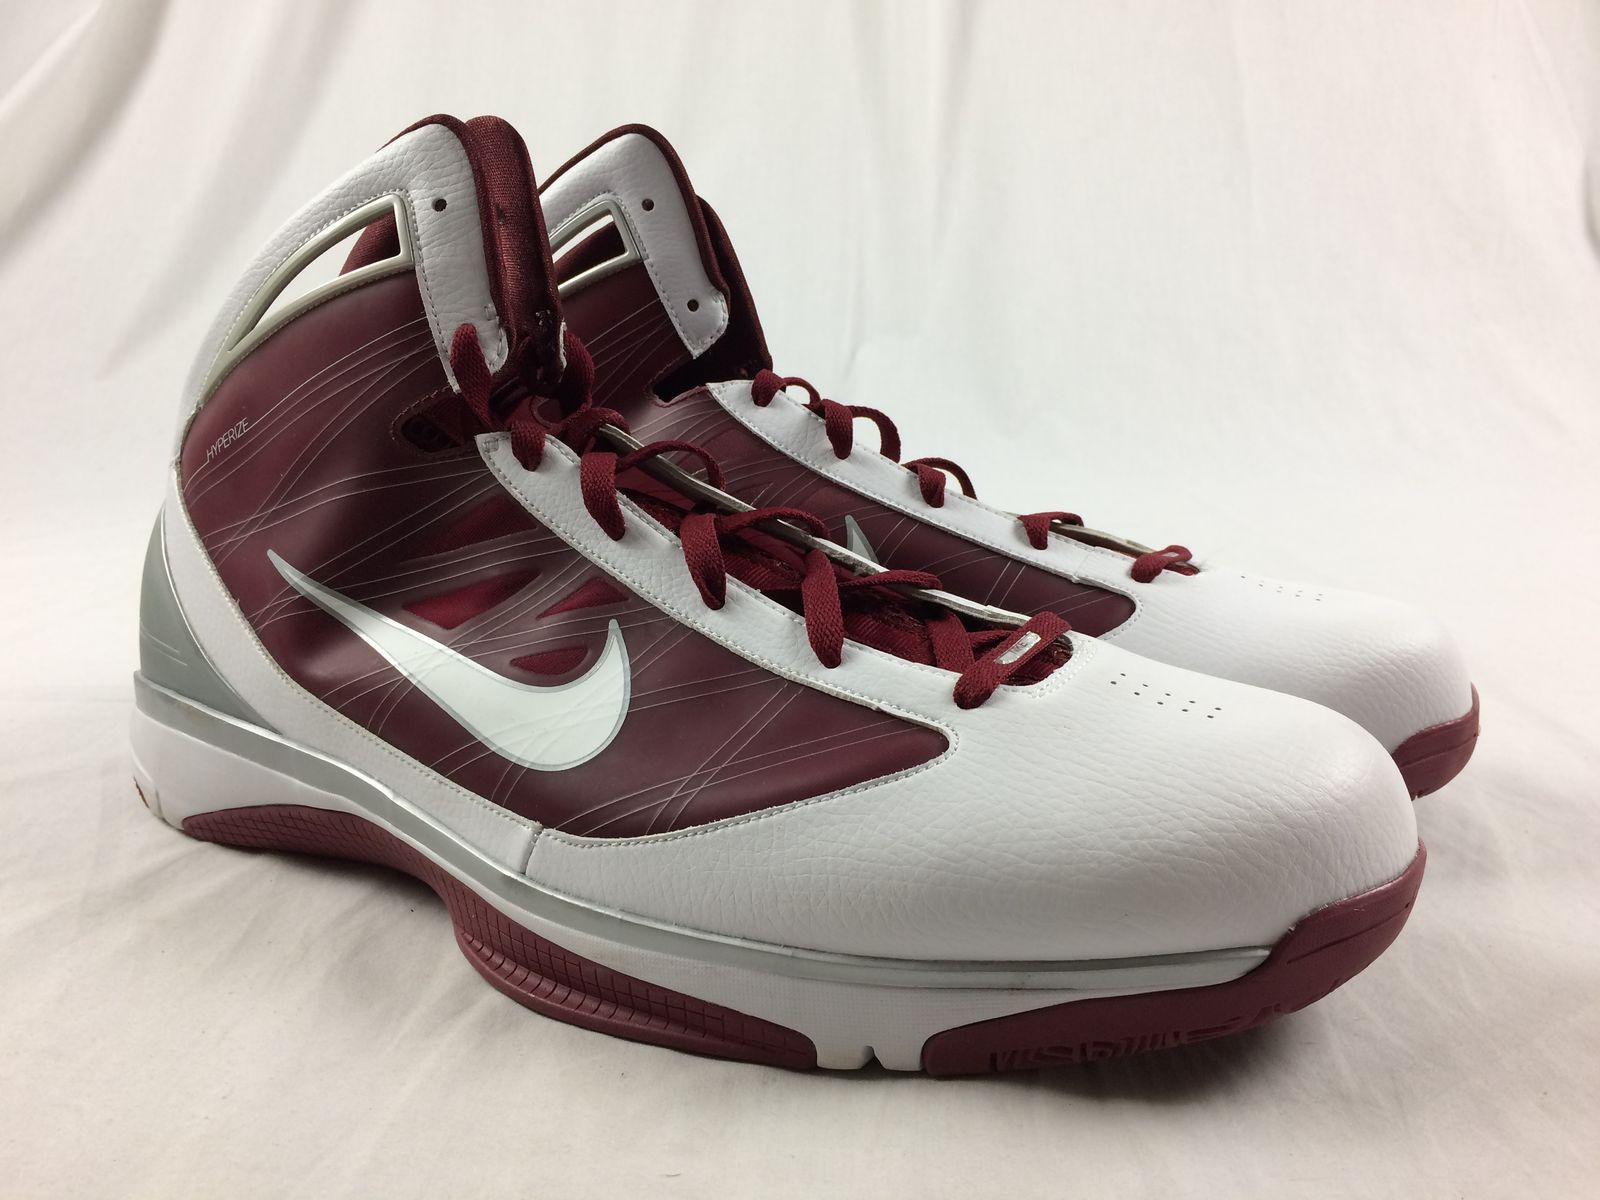 f147e863370d96 Details about NEW Nike Hyperize TB - Red White Basketball Shoes (Men s 19).  Listed for charity